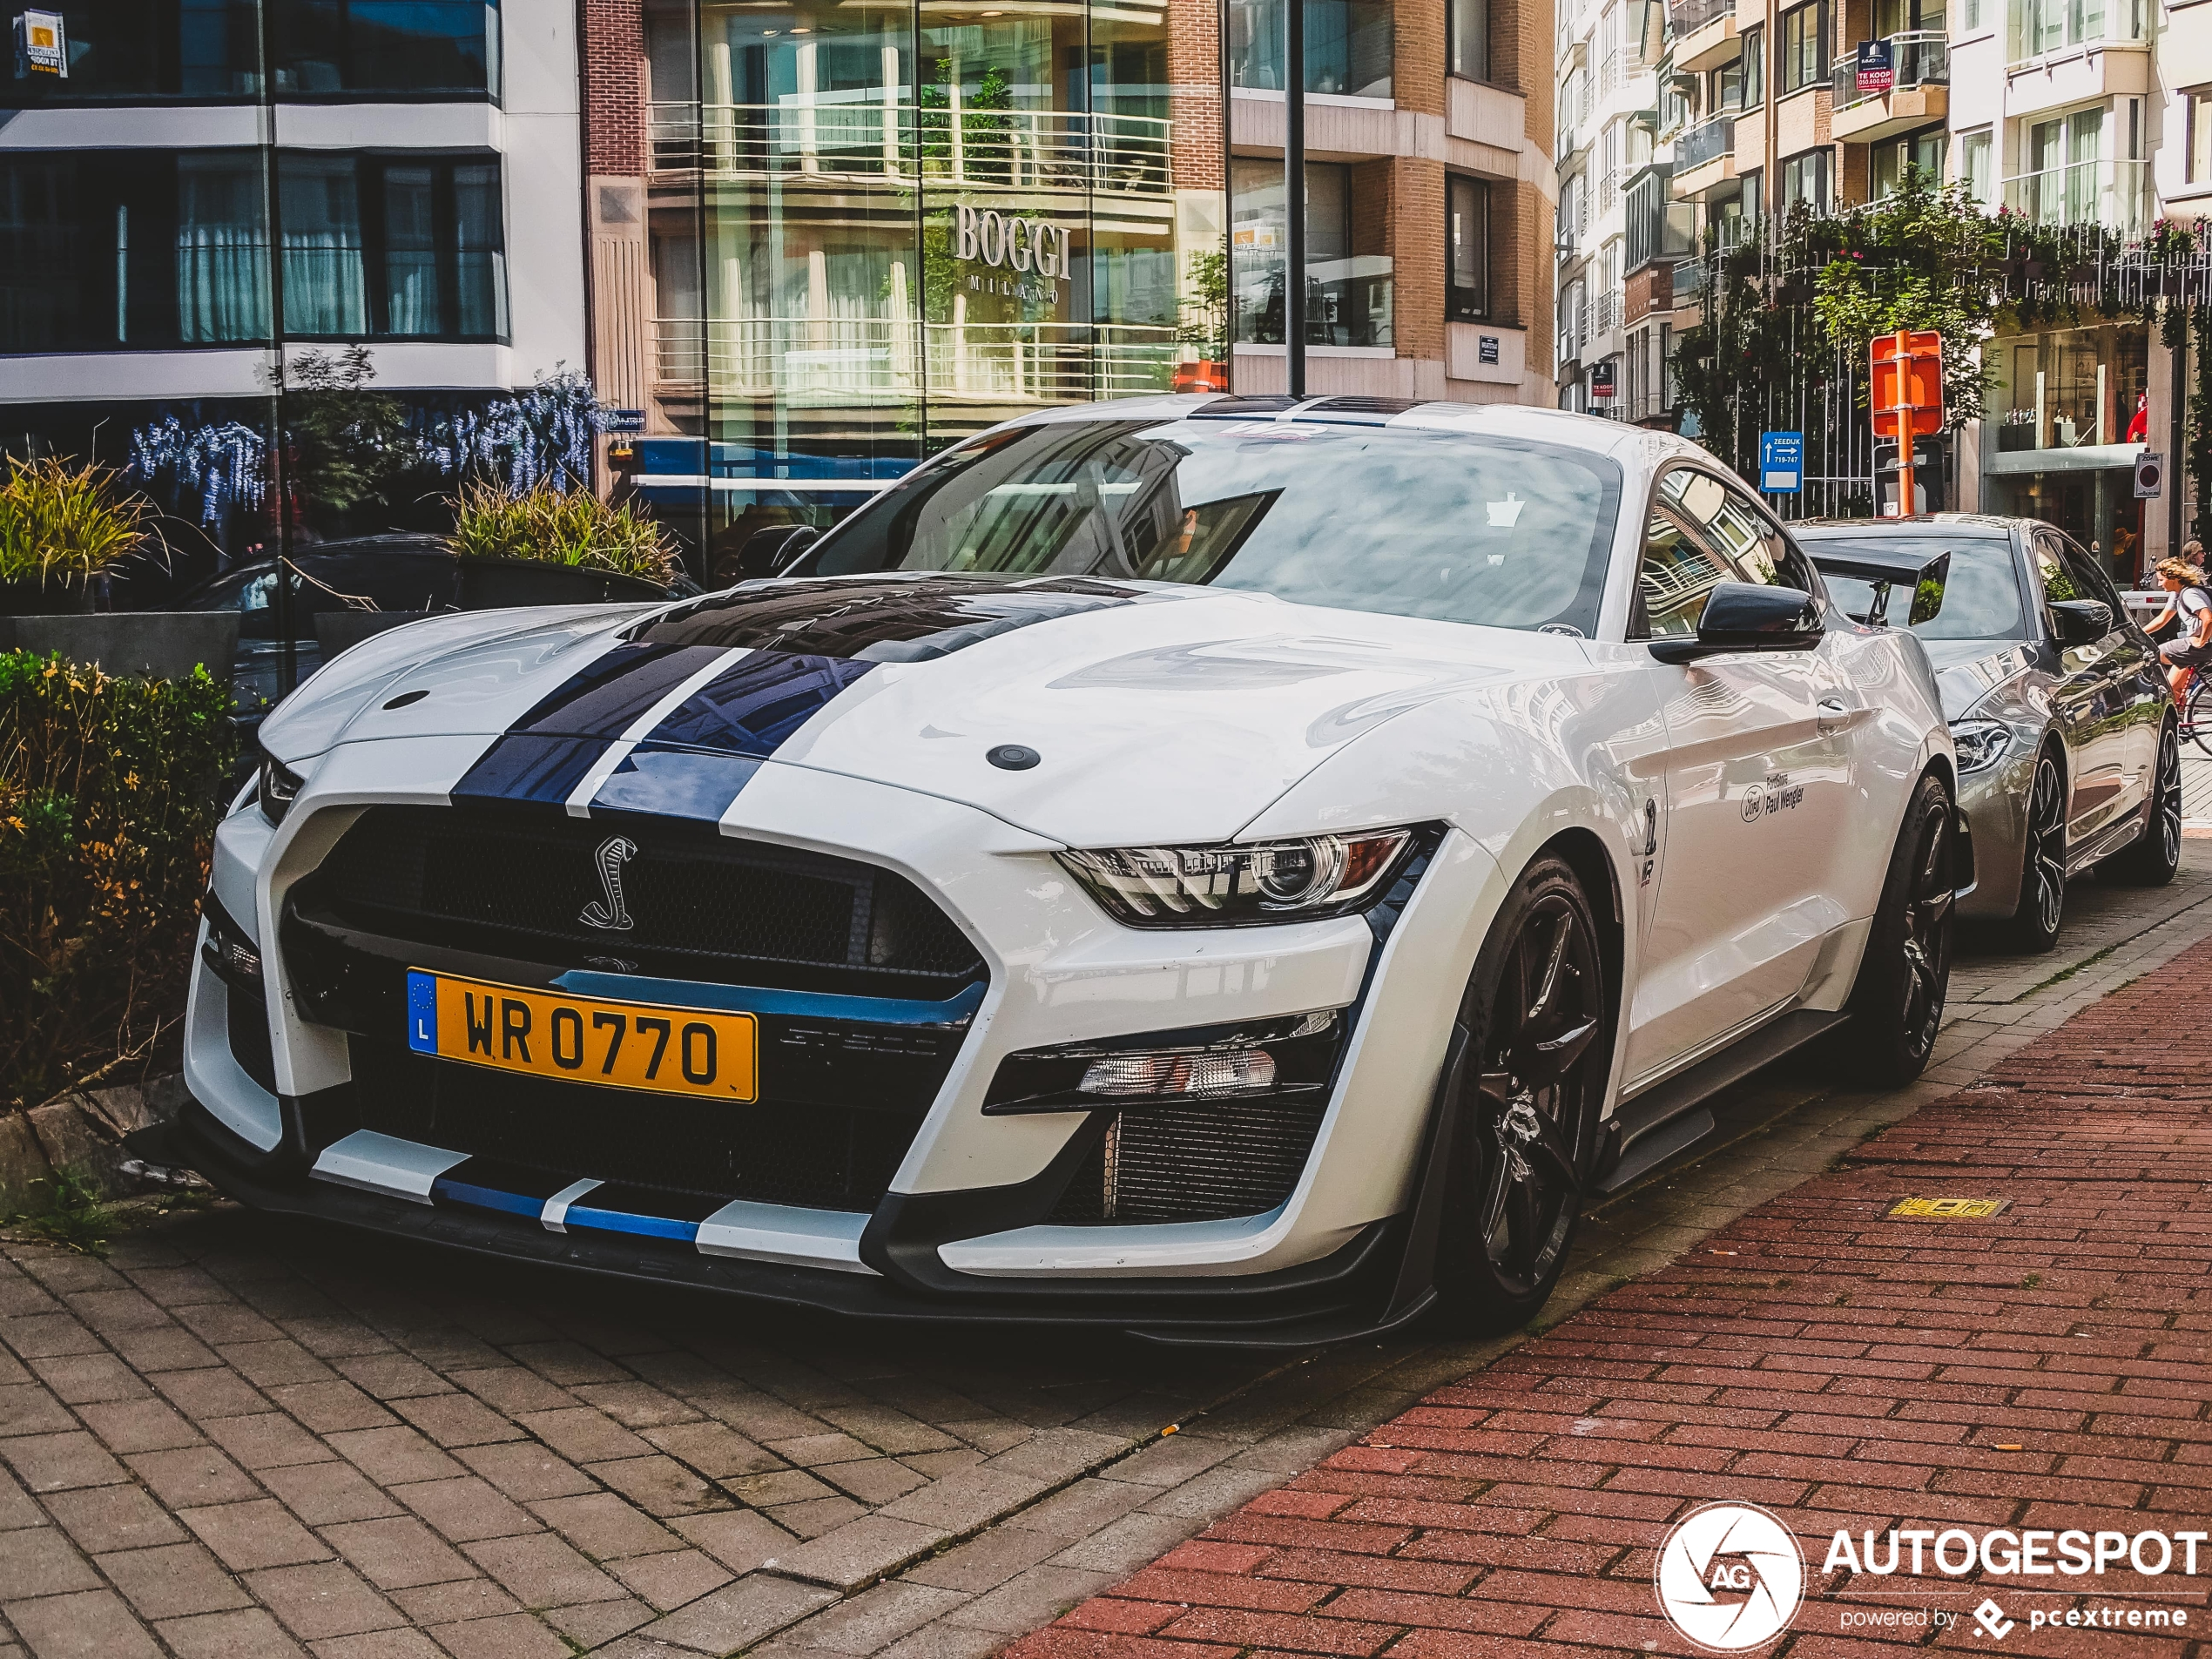 Ford Mustang Shelby Gt500 2020 5 August 2020 Autogespot